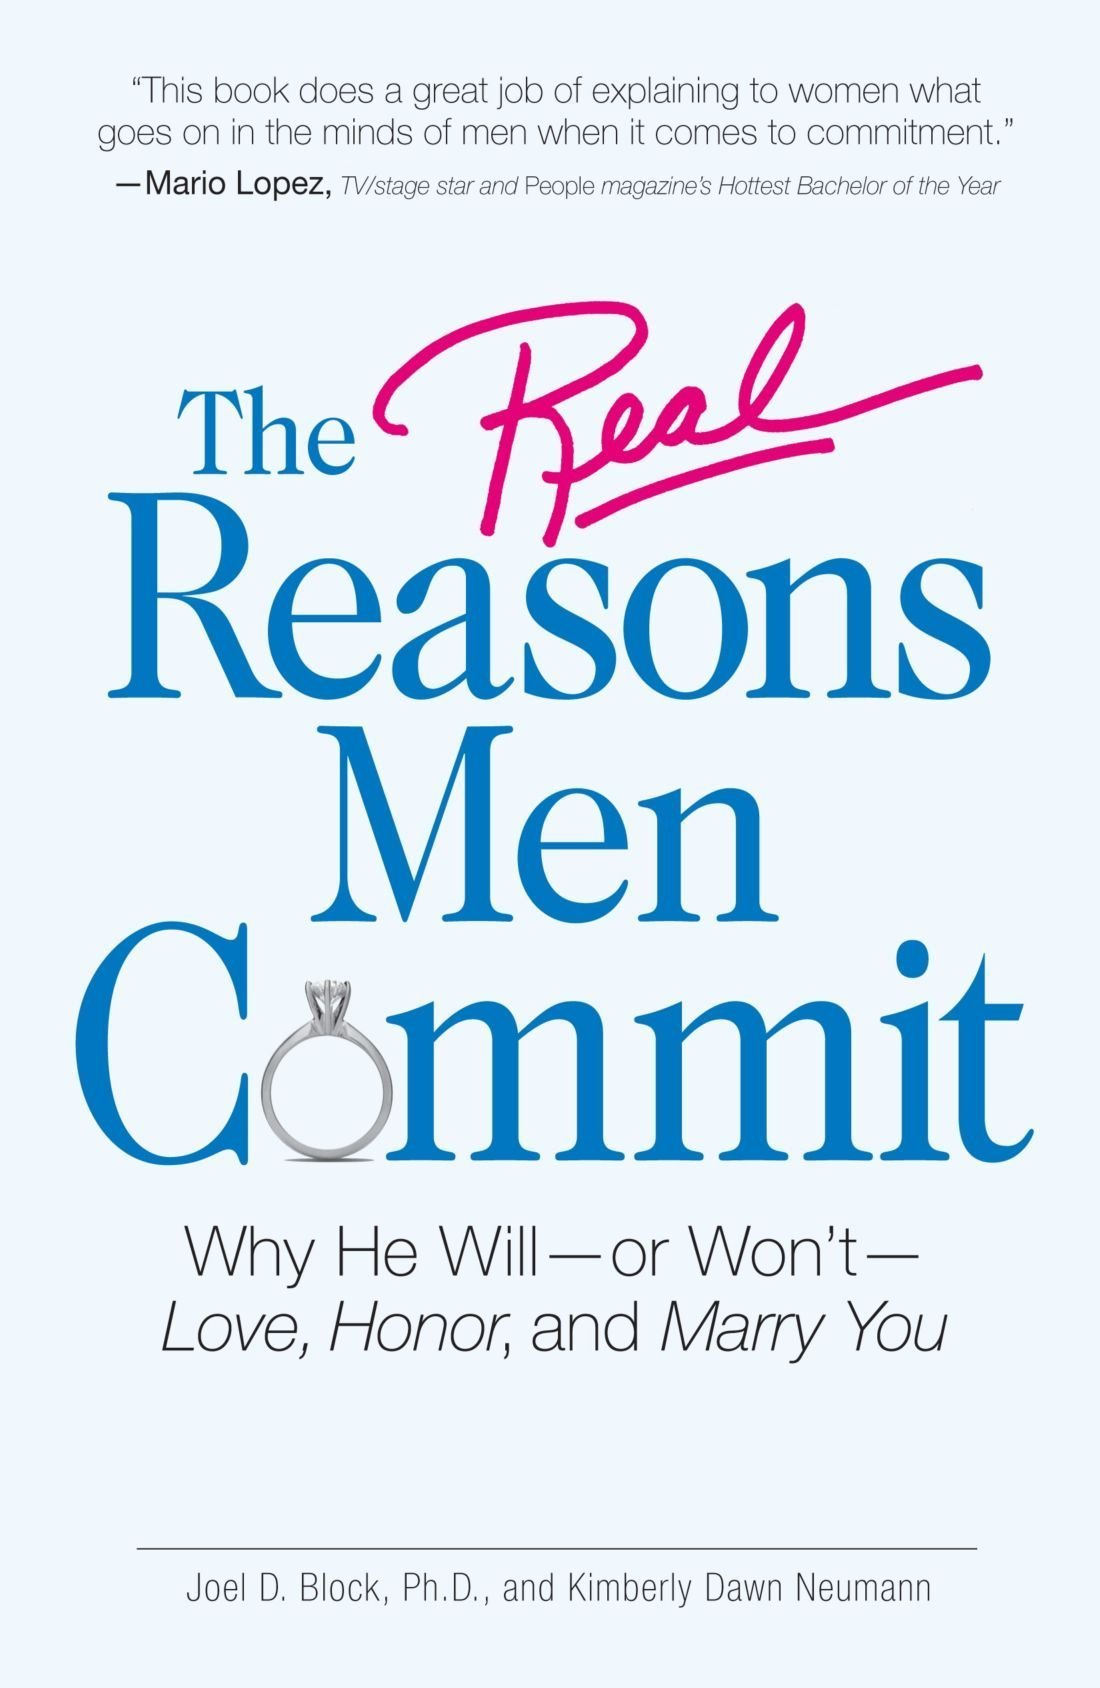 The Real Reasons Men Commit: Why He Will - or Won't - Love, Honor and Marry You pdf